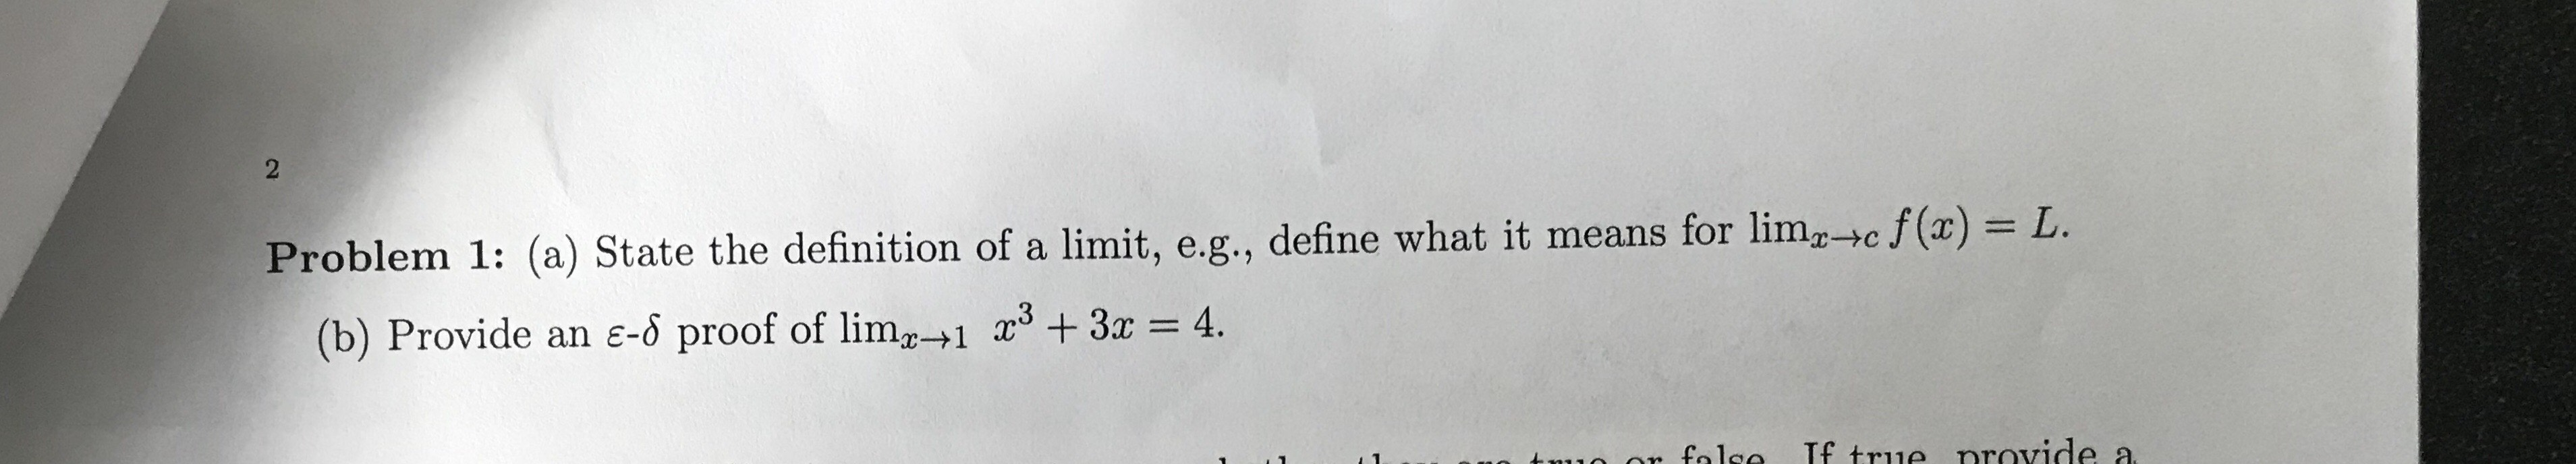 2 Problem 1: (a) State the definition of a limit, e.g., define what it means for limc f(x) = L (b) Provide an e-o proof of lim+1 x +3x = 4. If true nrovide a o ar falco